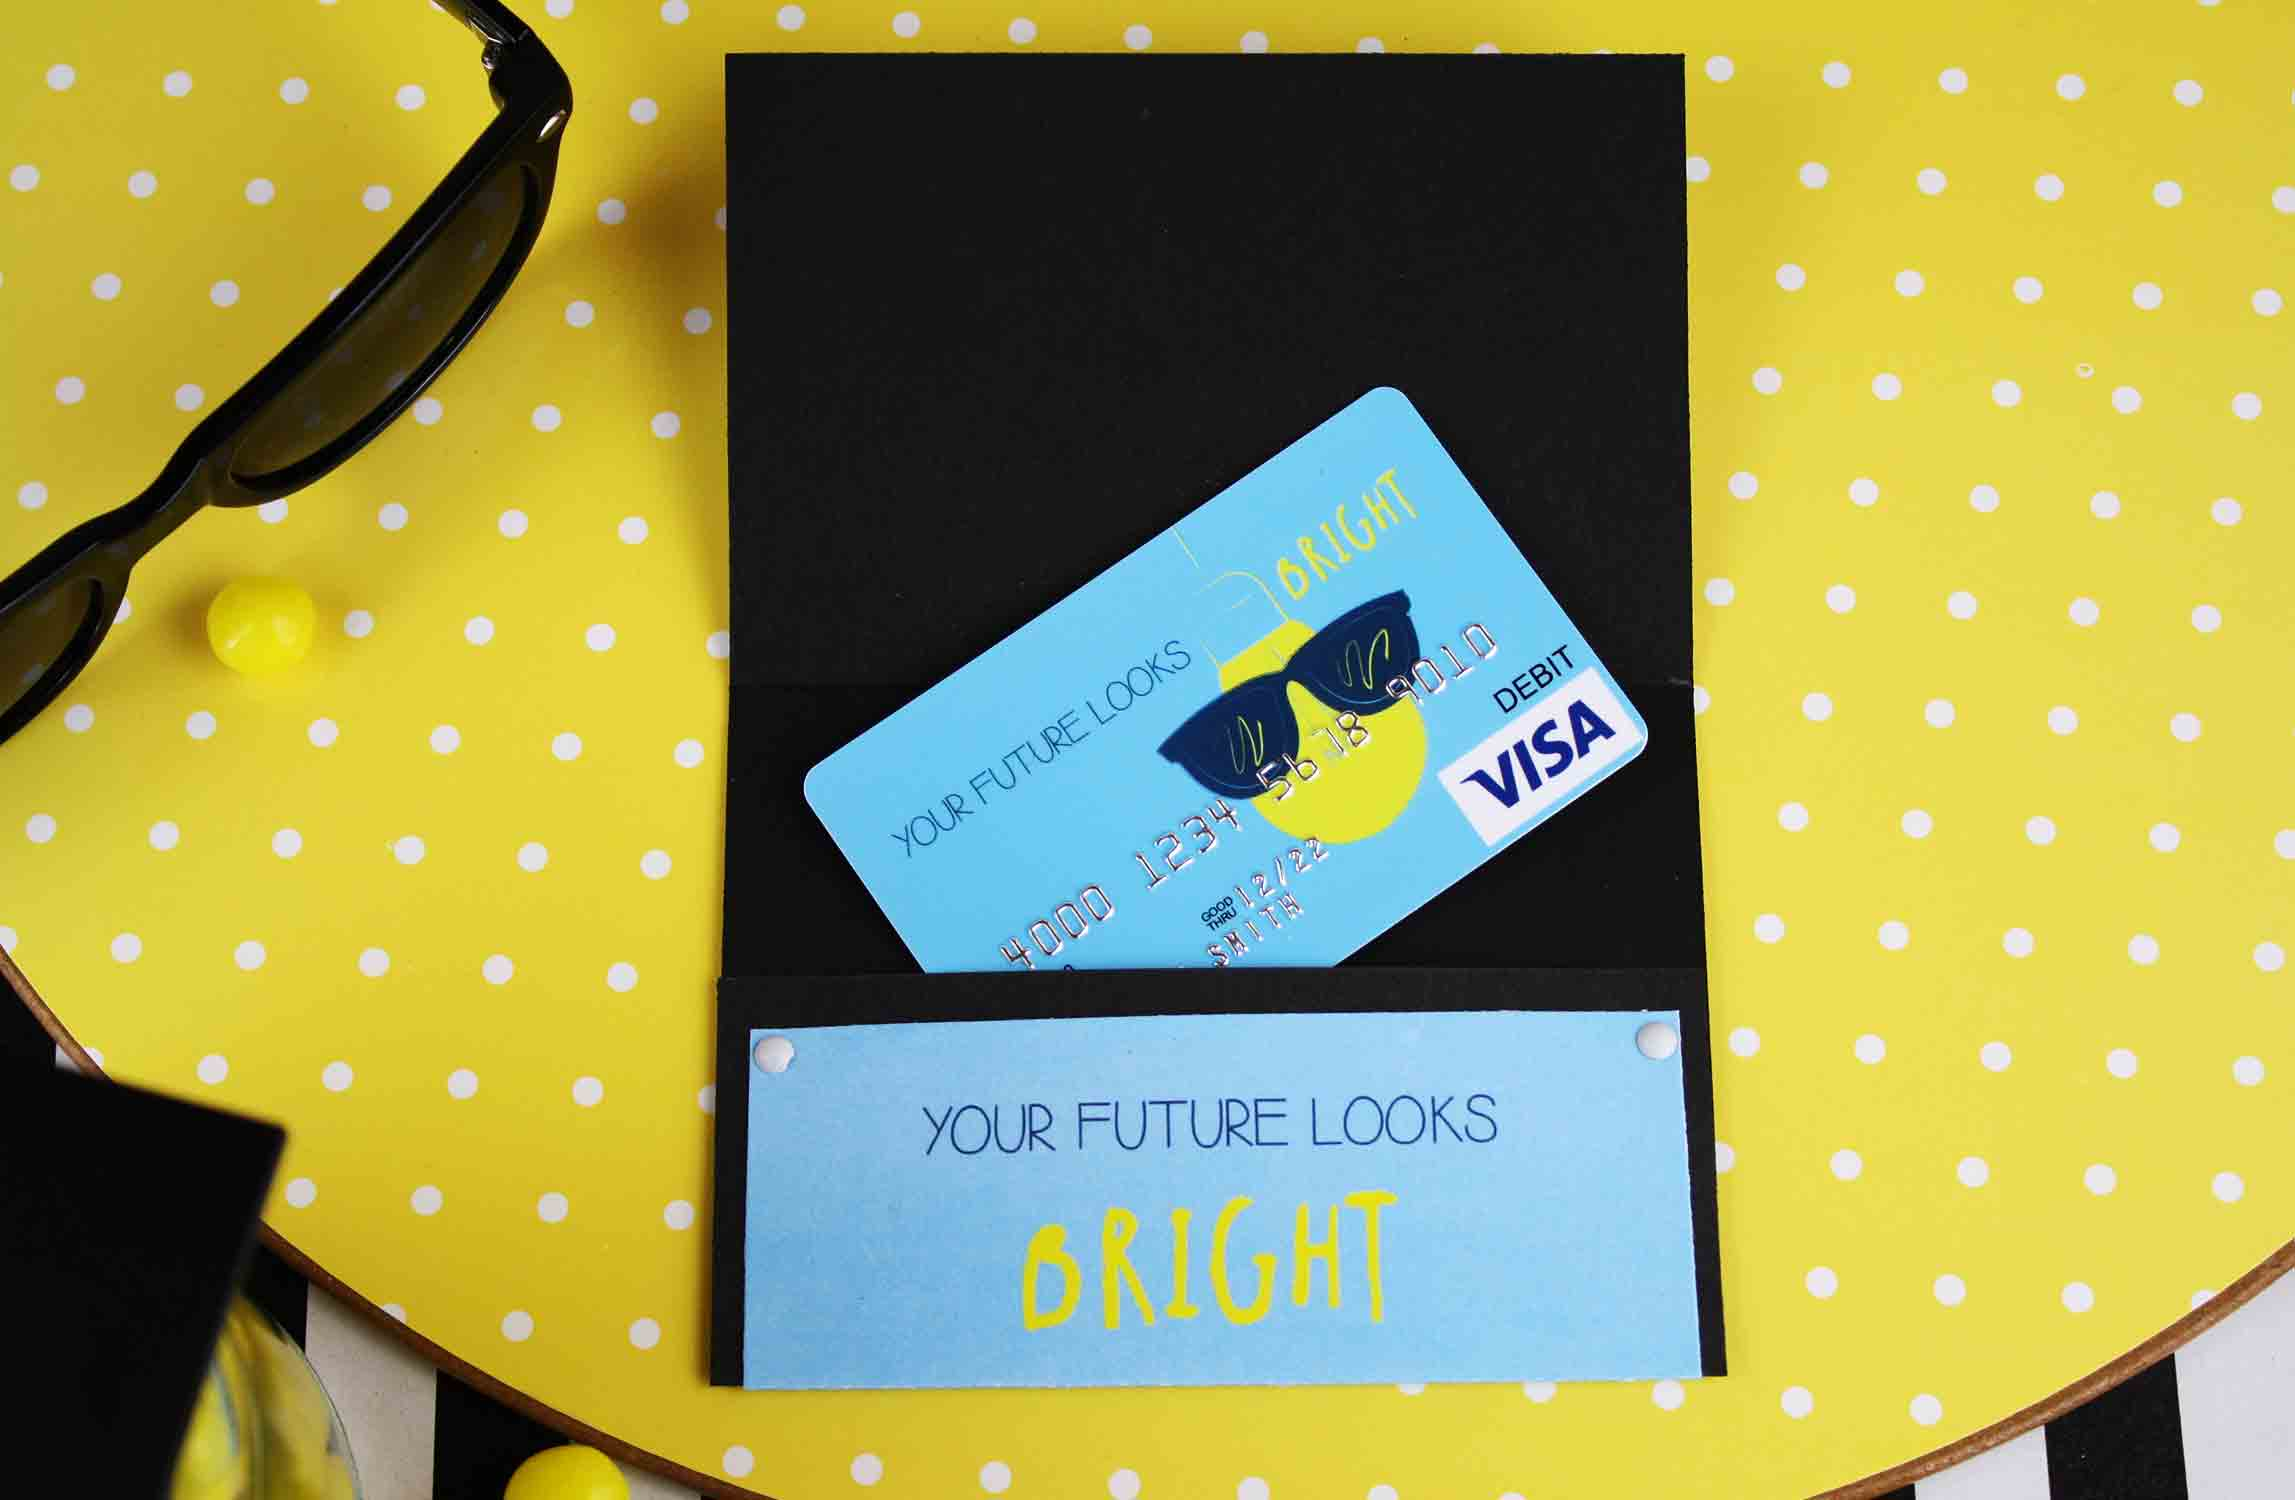 The future is bright Visa gift card